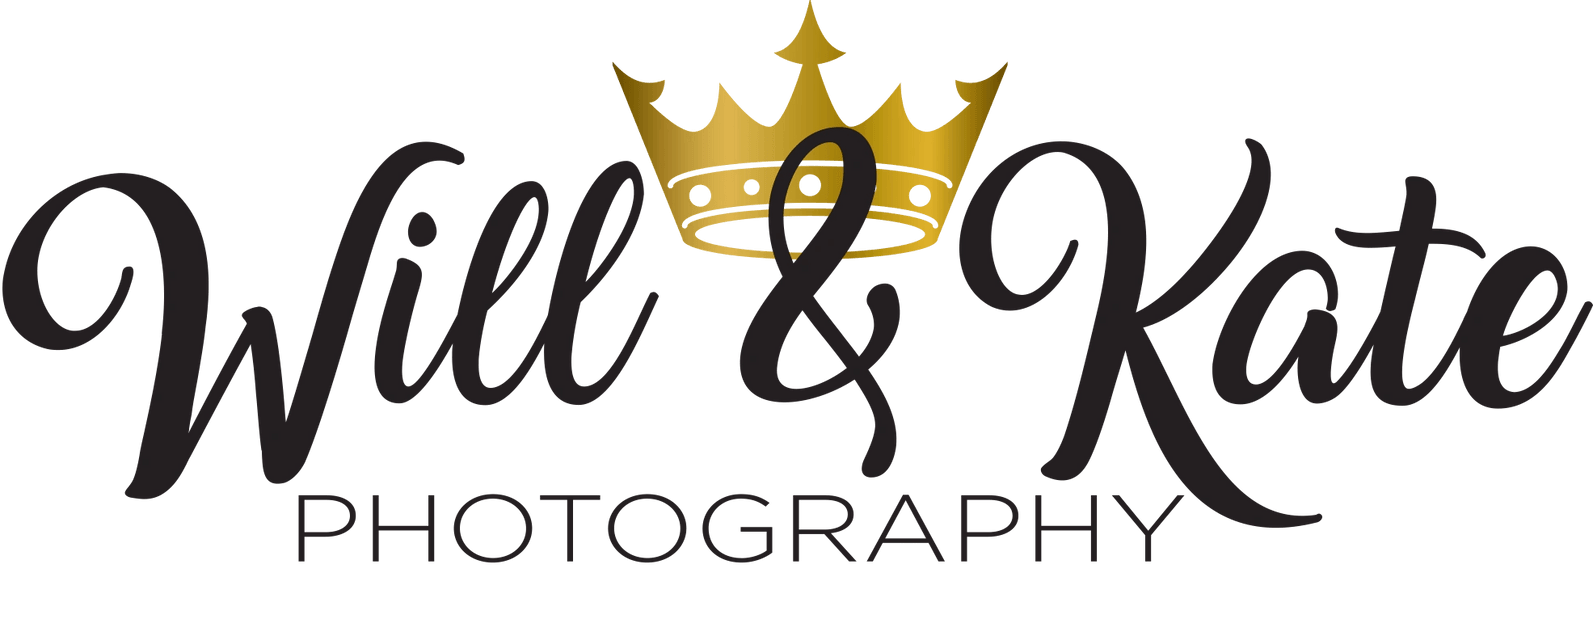 Will and Kate Photography